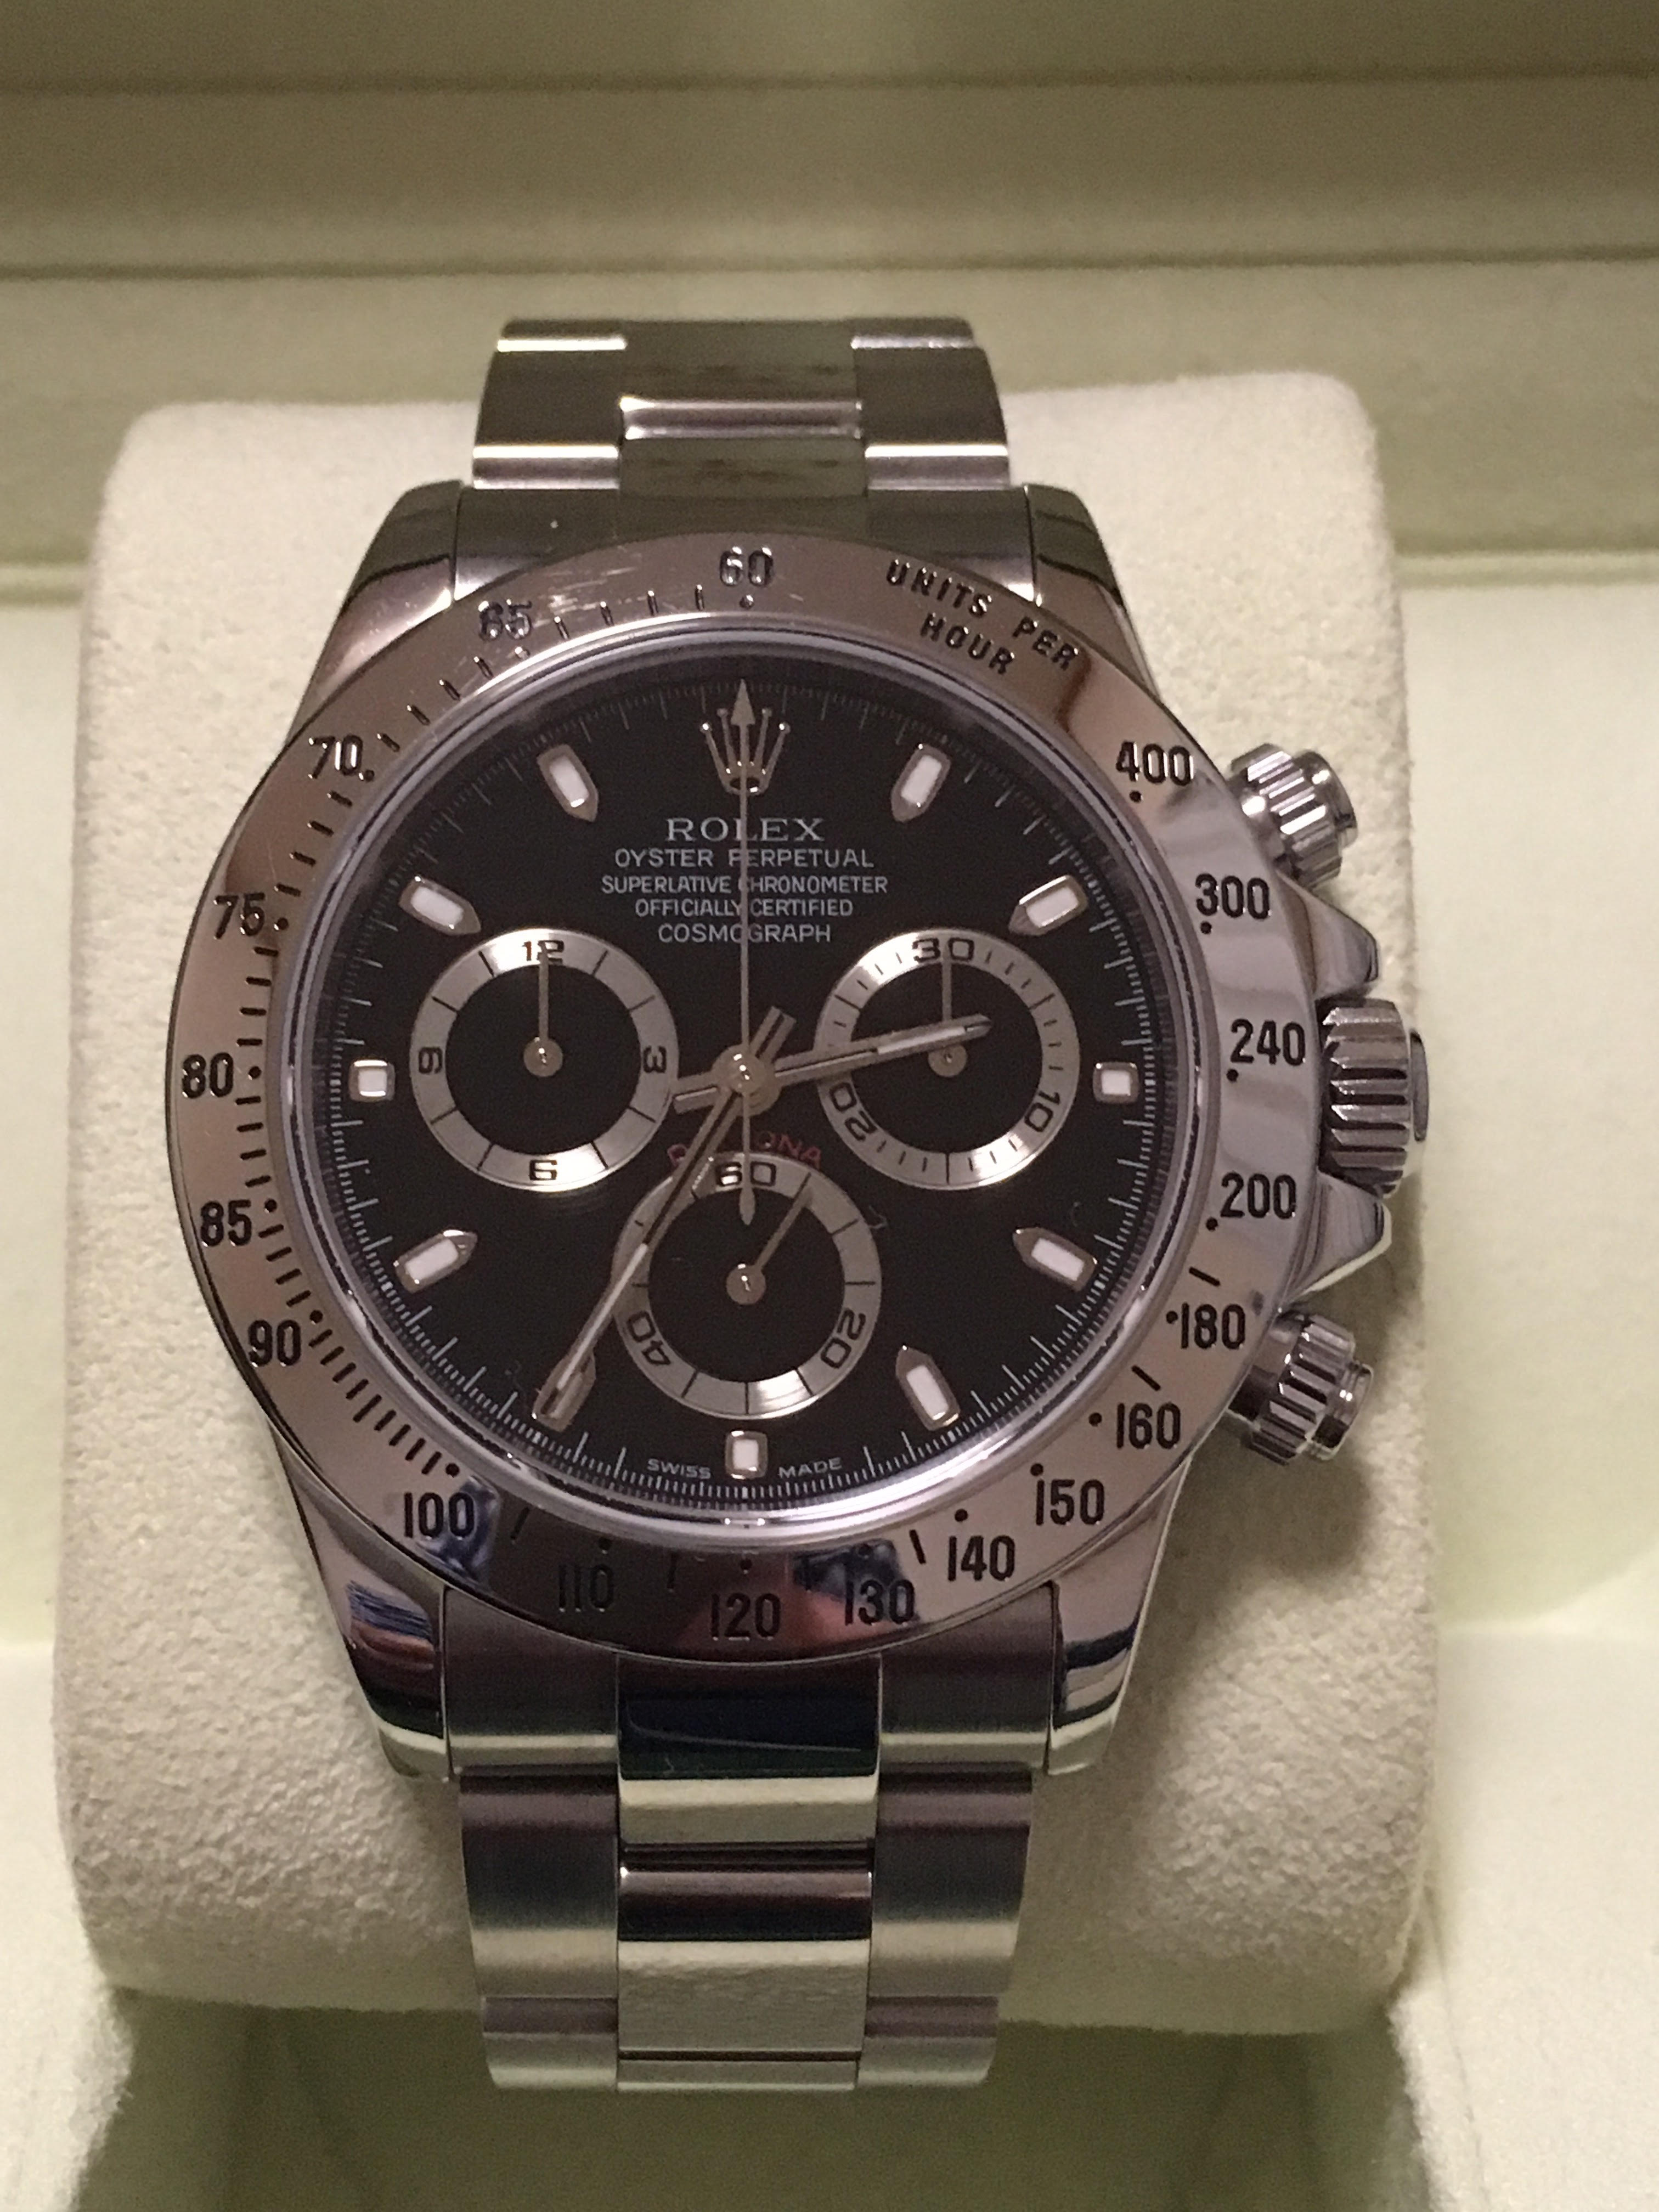 low priced e31d4 03c18 ROLEX - バフェットを目指そう!